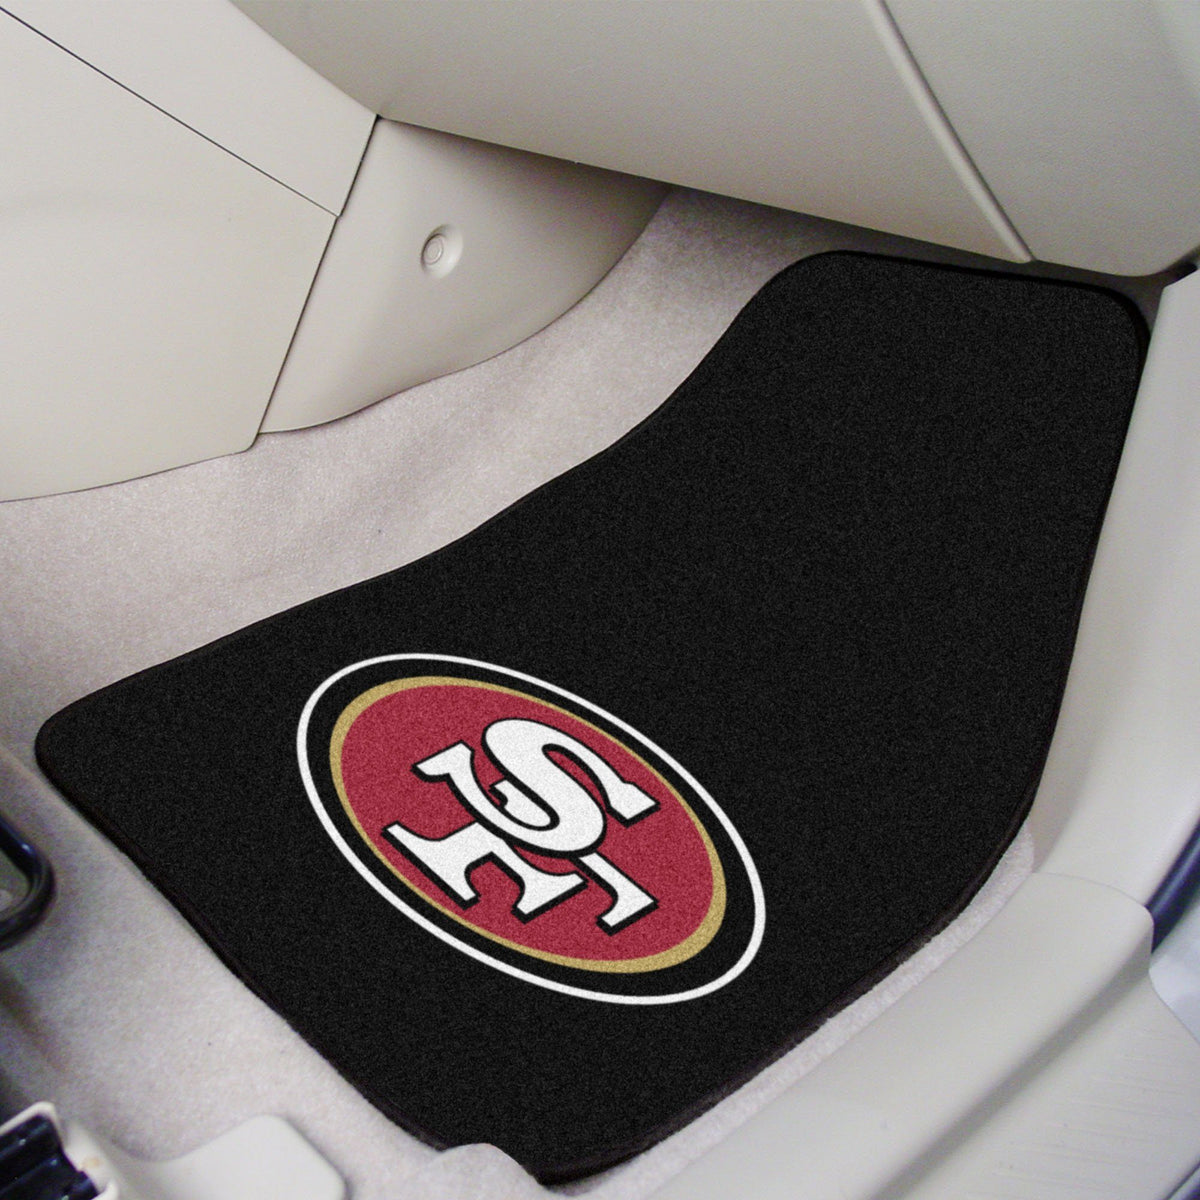 "NFL - 2-pc Carpet Car Mat Set, 17"" x 27"" NFL Mats, Front Car Mats, 2-pc Carpet Car Mat Set, NFL, Auto Fan Mats San Francisco 49ers"